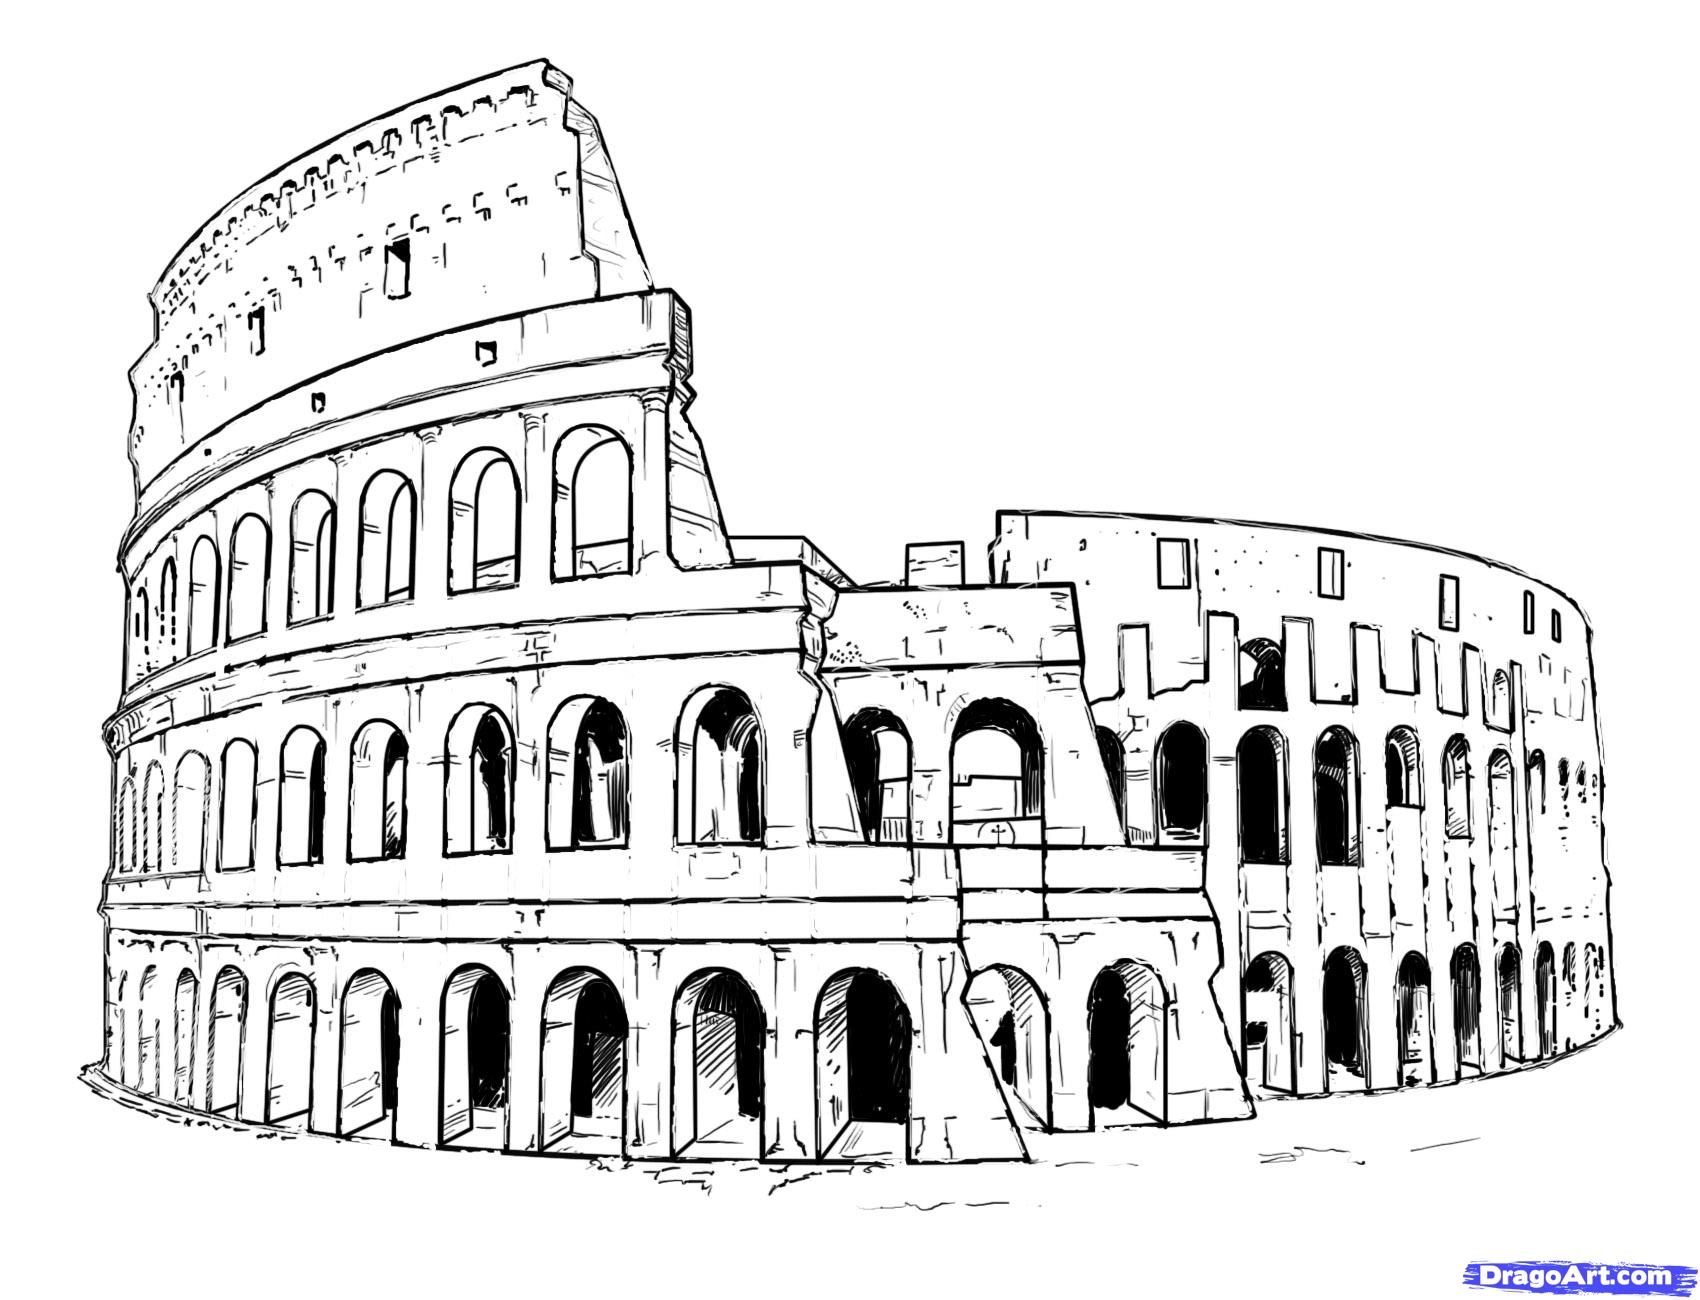 How to draw the Colosseum on paper with a pencil step by step